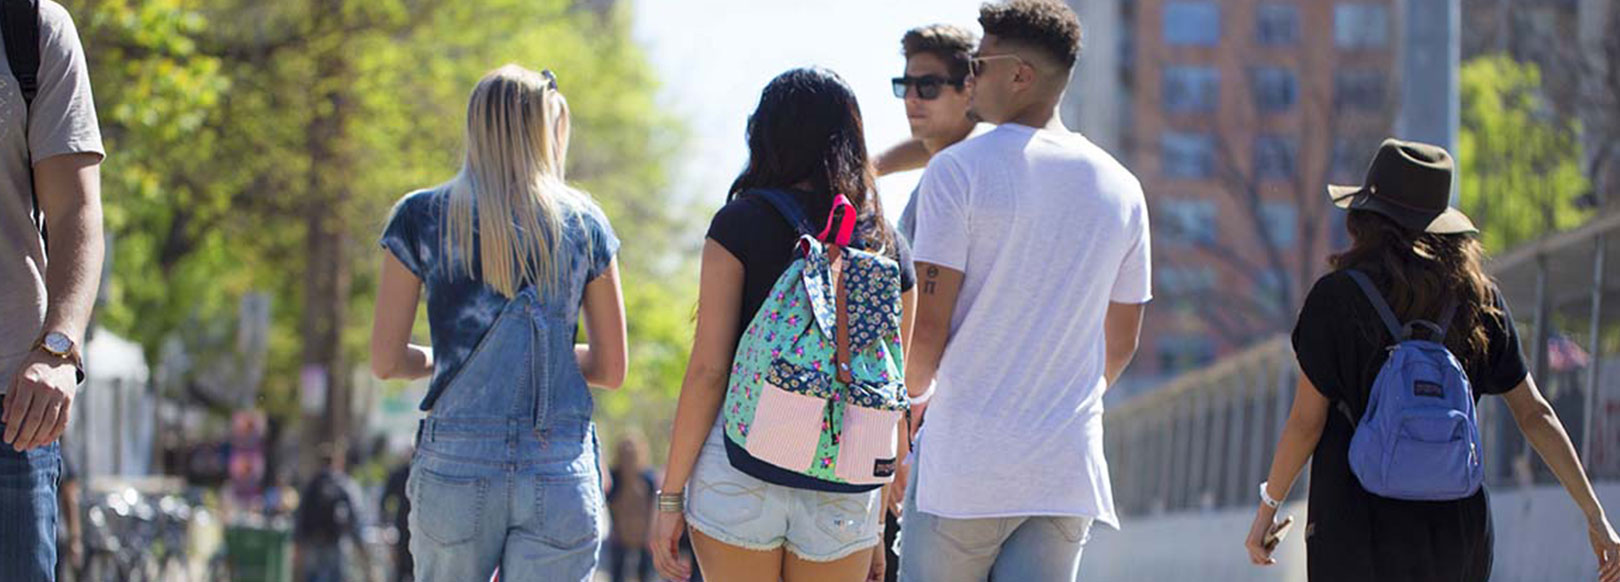 "BACK TO SCHOOL IN STYLE<br><span class=""title-sm"">with BackPacks.com</span>"